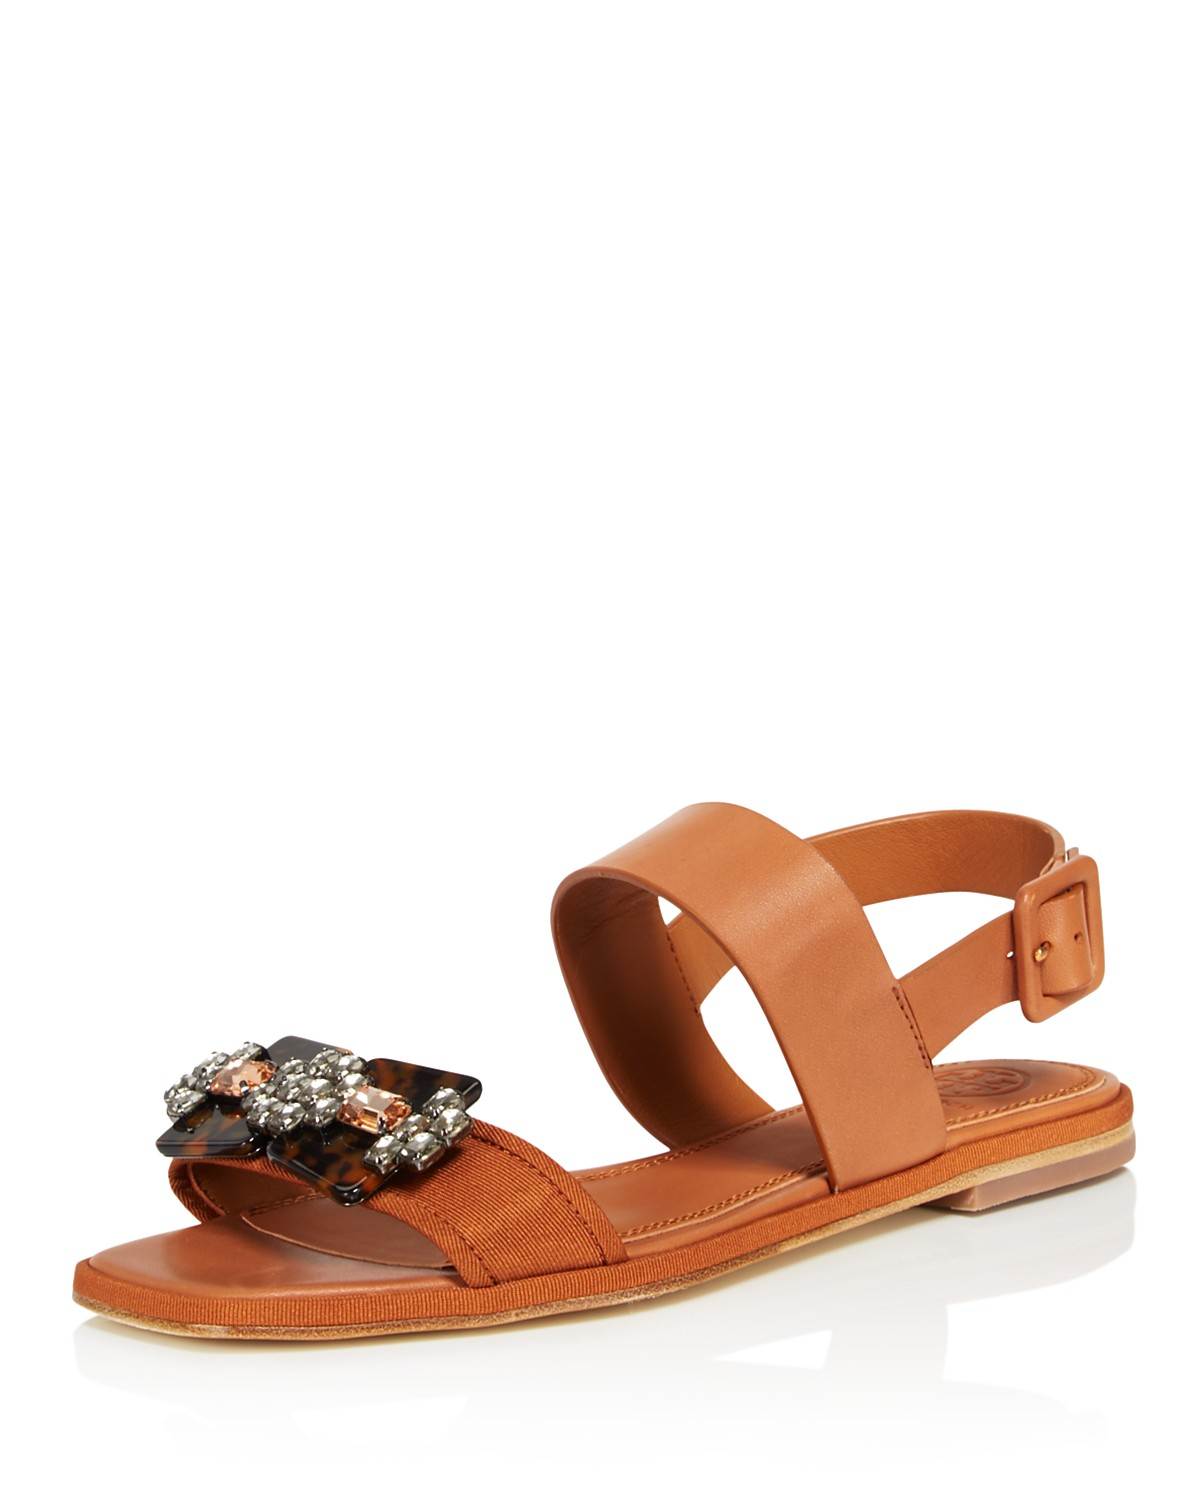 Tory Burch Women's Delaney Embellished Leather Sandals MyKw4